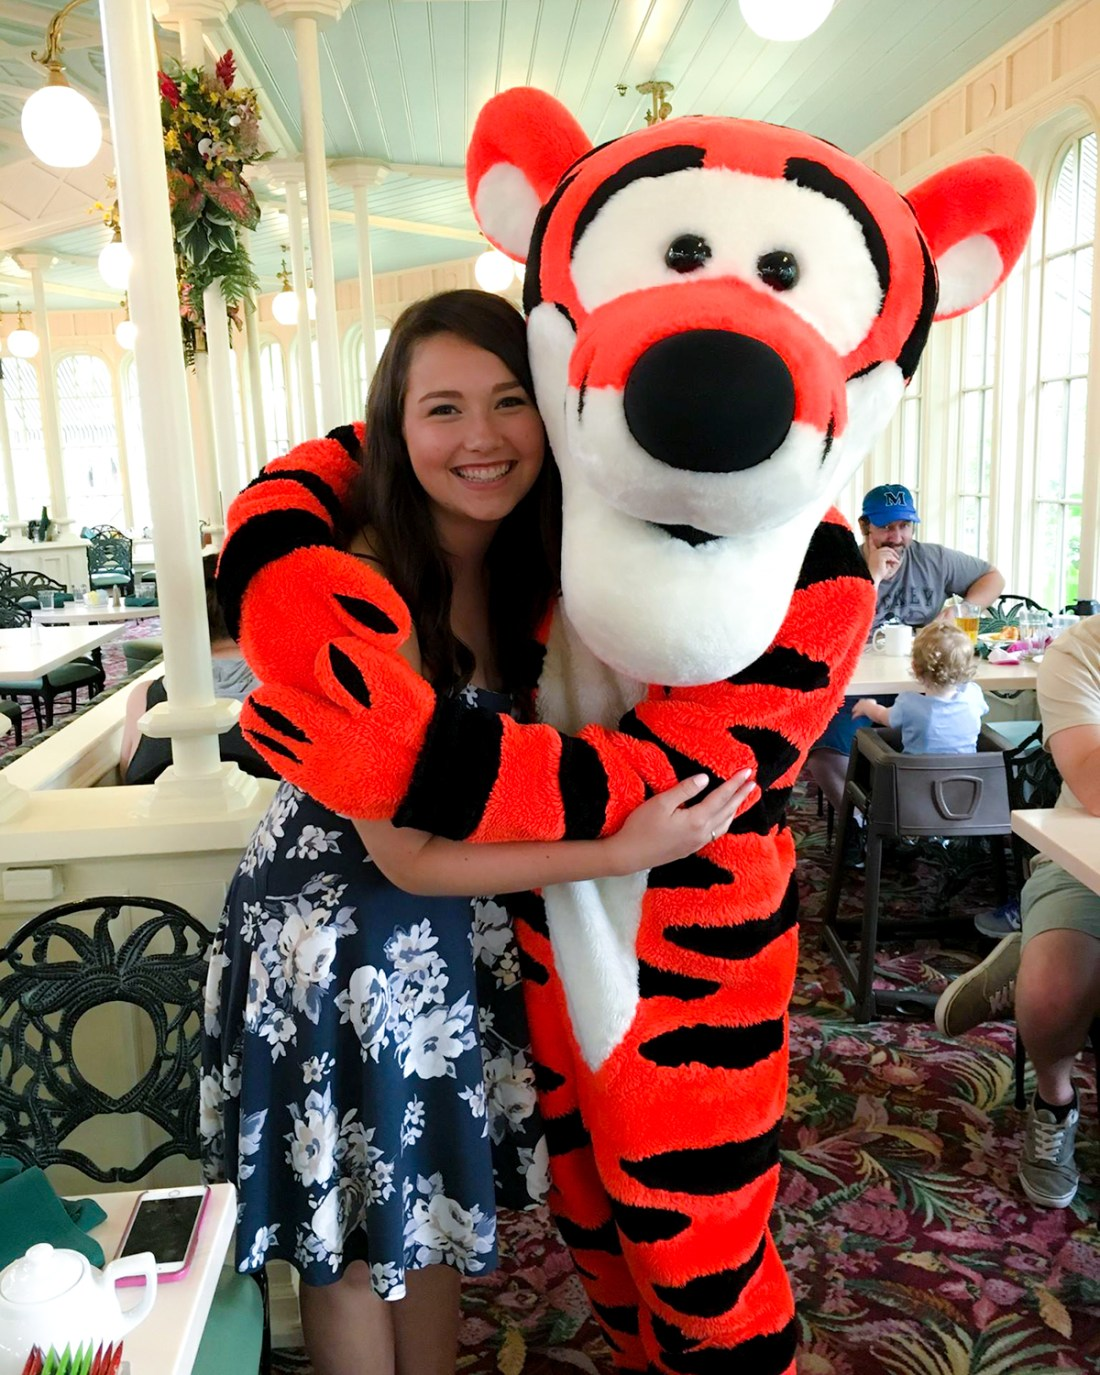 The Crystal Palace in the Magic Kingdom is a go-to Character dining experience and you get to meet Tigger too!